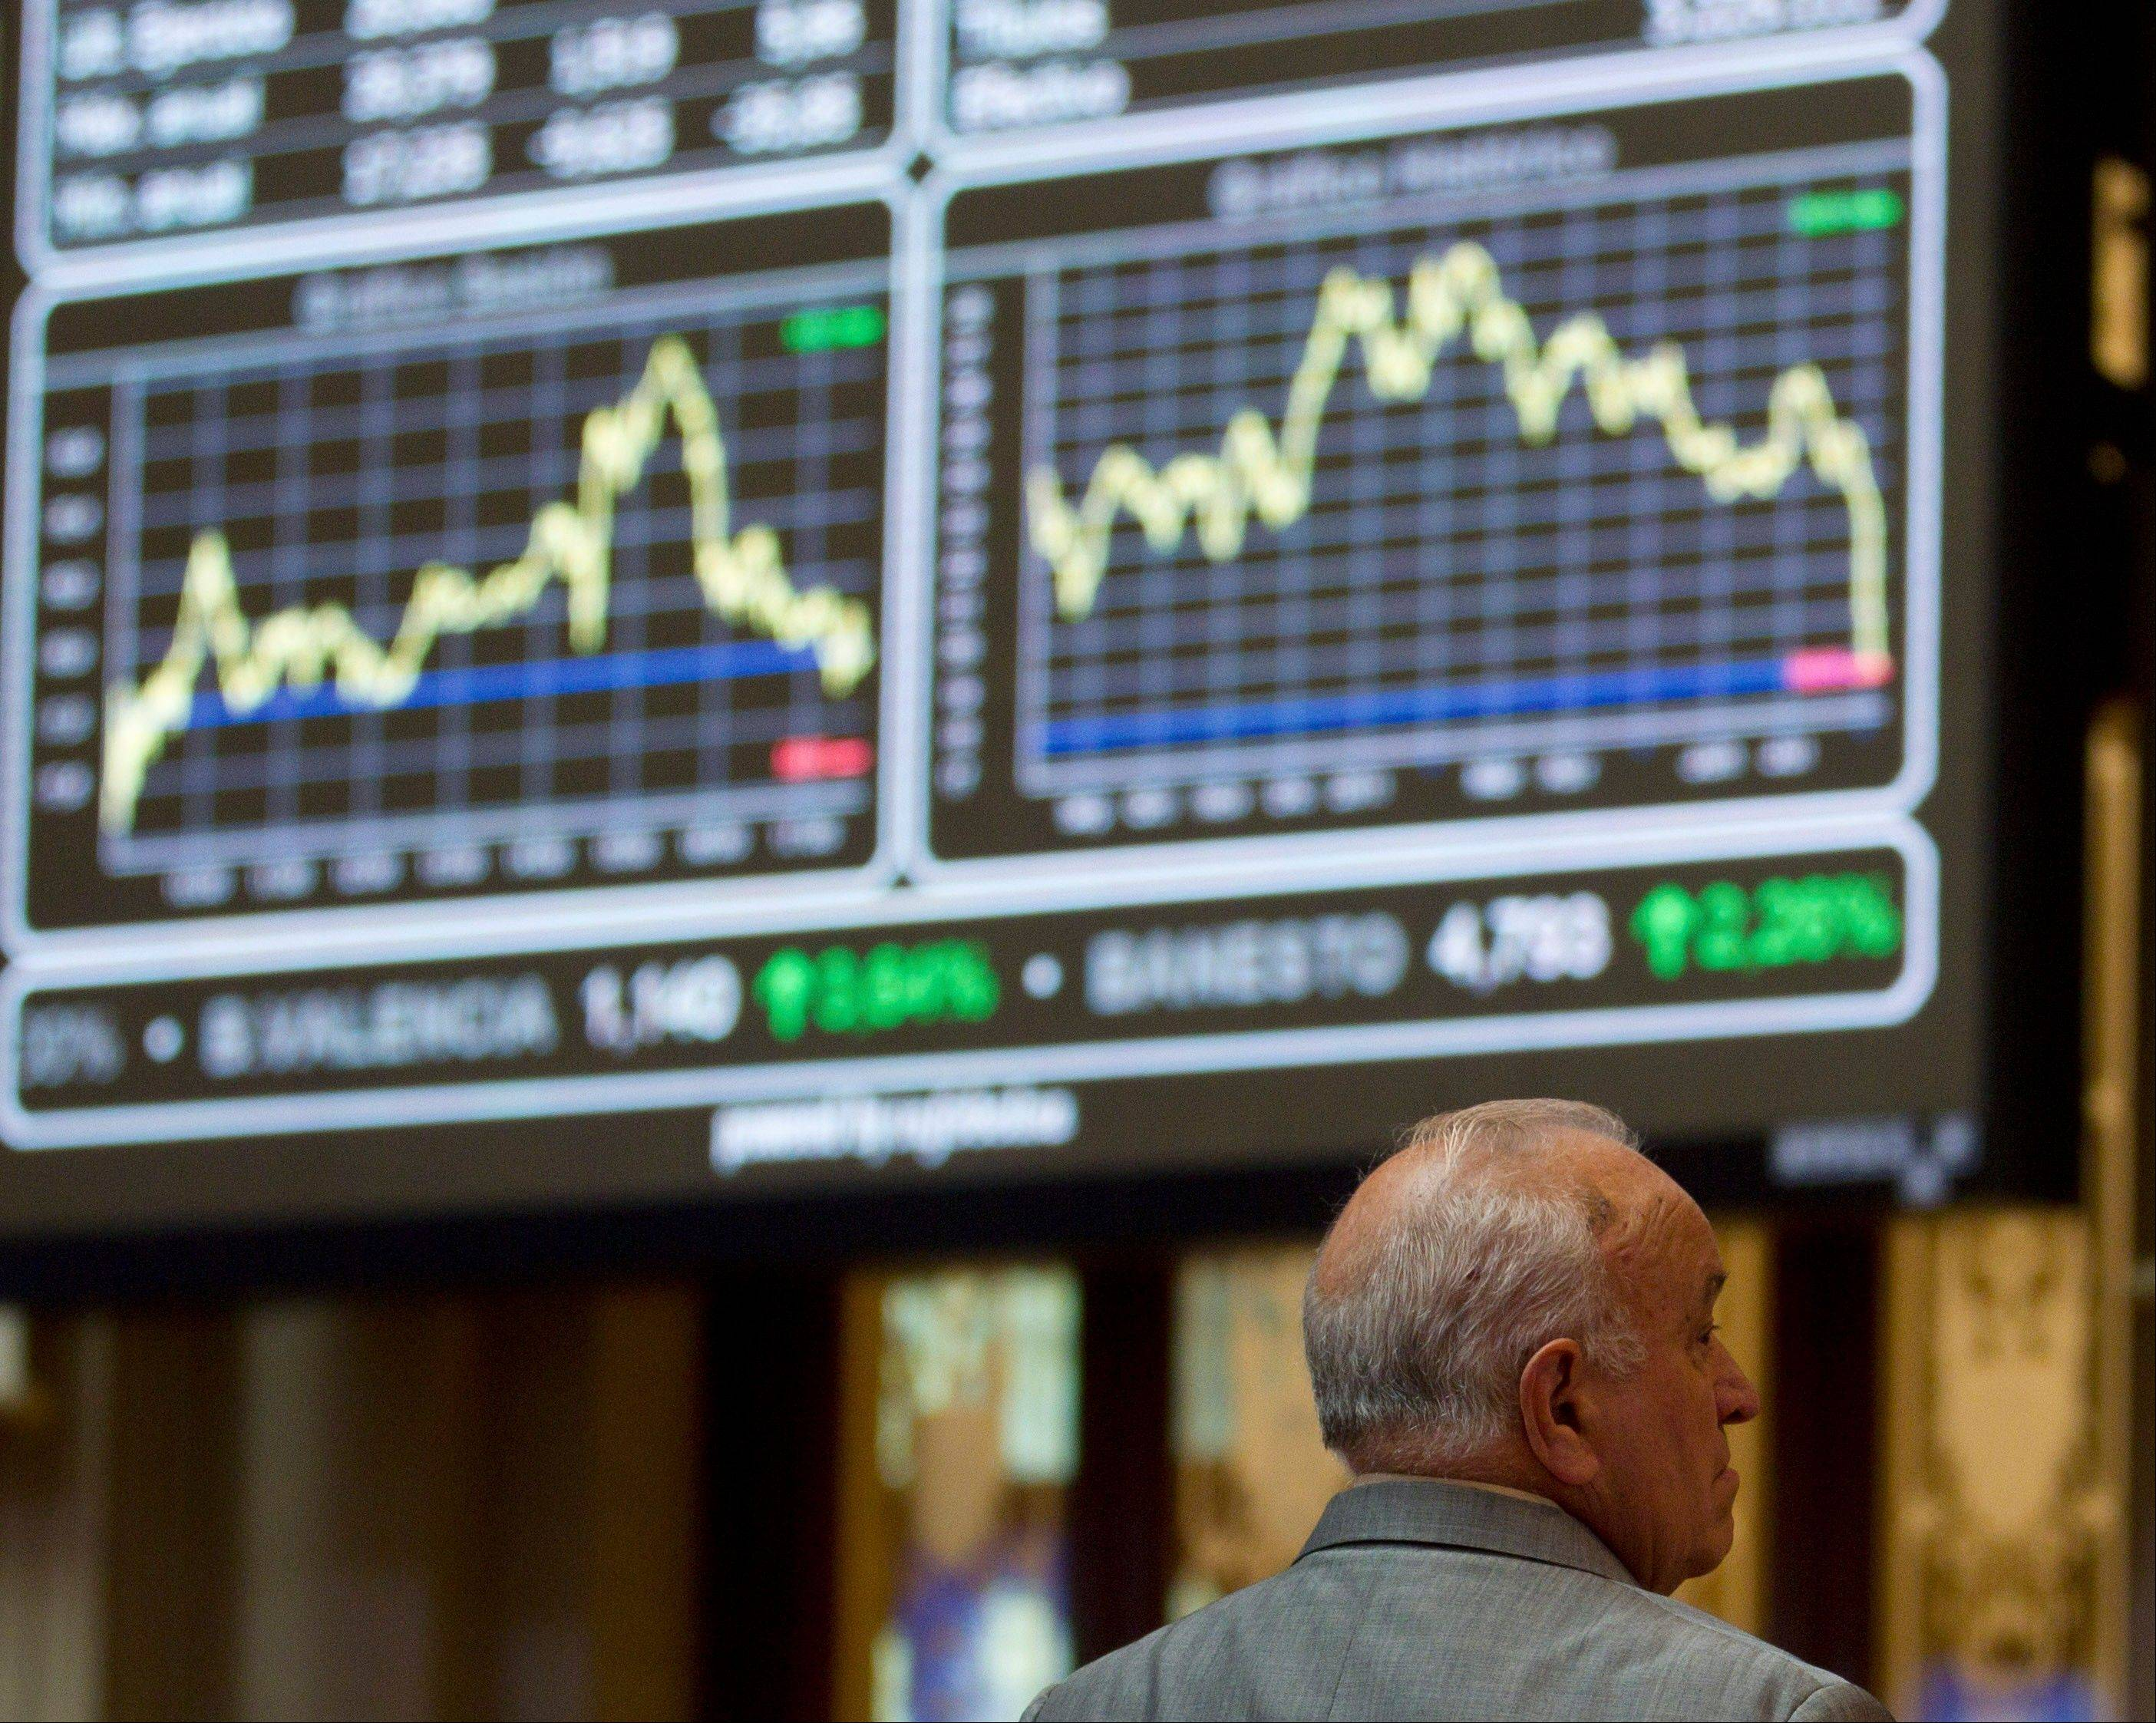 A broker looks on in front of the main screen at the Stock Exchange in Madrid Monday Aug. 8, 2011. The borrowing costs of both Spain and Italy dropped sharply in early trading Monday after the European Central Bank signaled it would intervene in the markets to keep the two countries' bond prices supported. (AP Photo/Paul White)